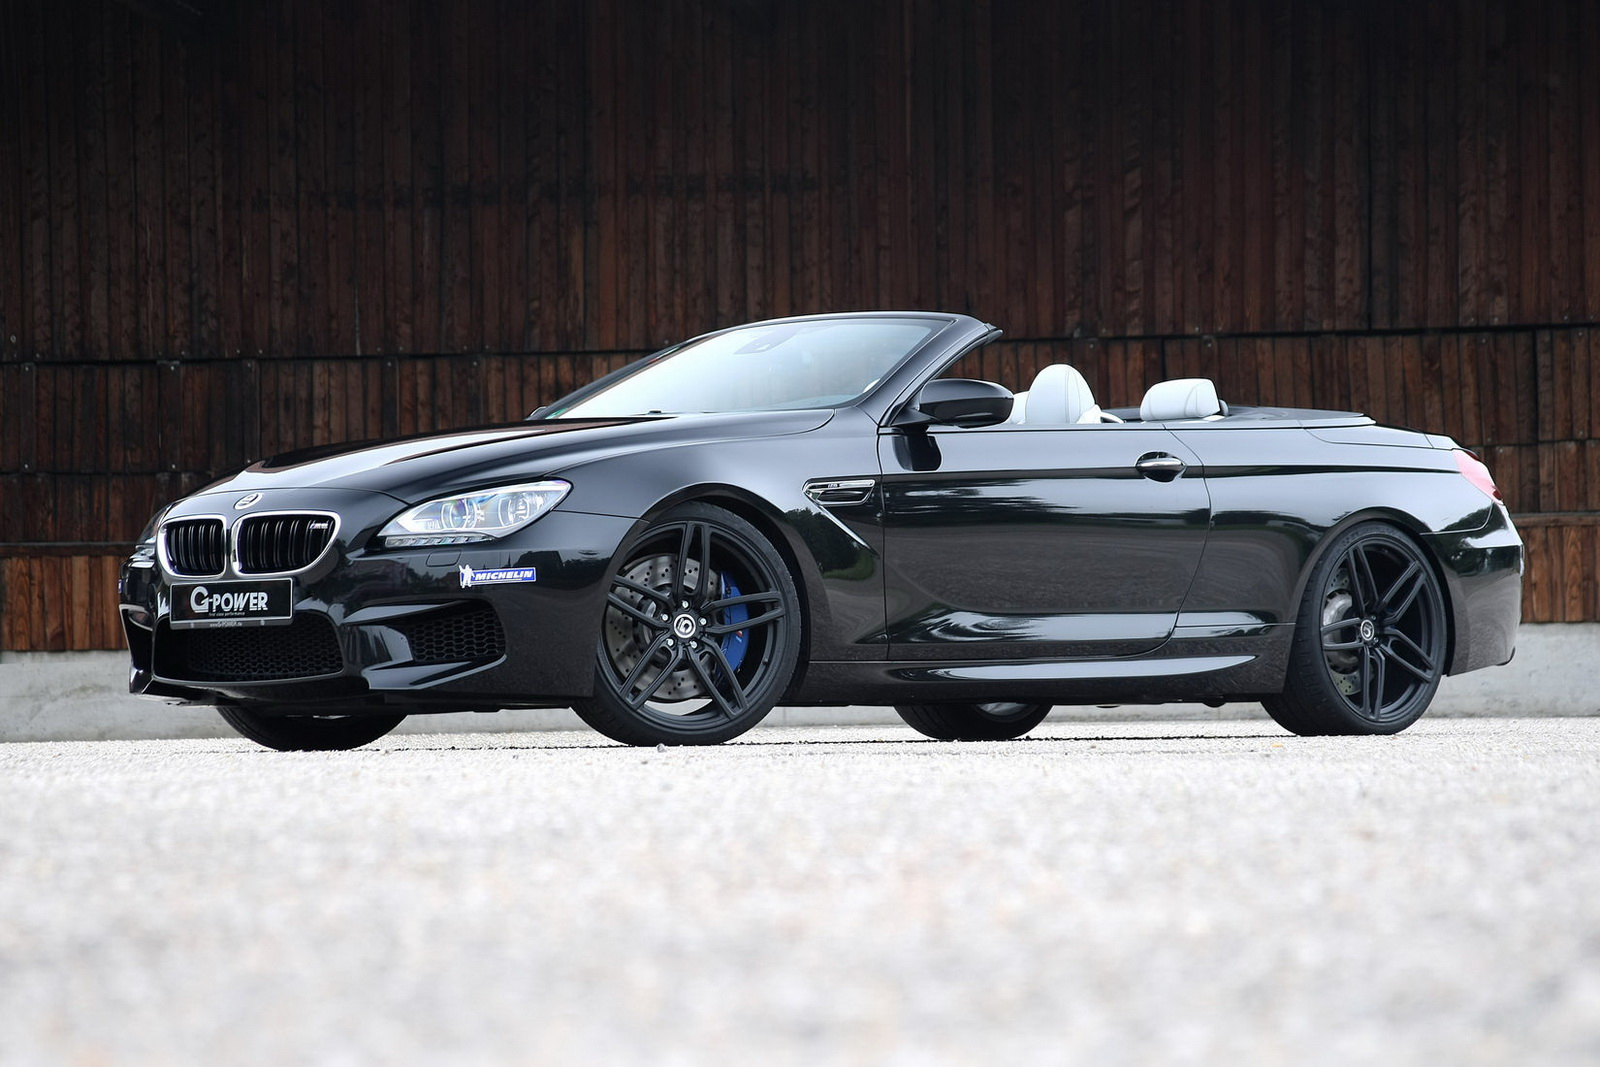 official 729hp g power bmw m6 gtspirit. Black Bedroom Furniture Sets. Home Design Ideas